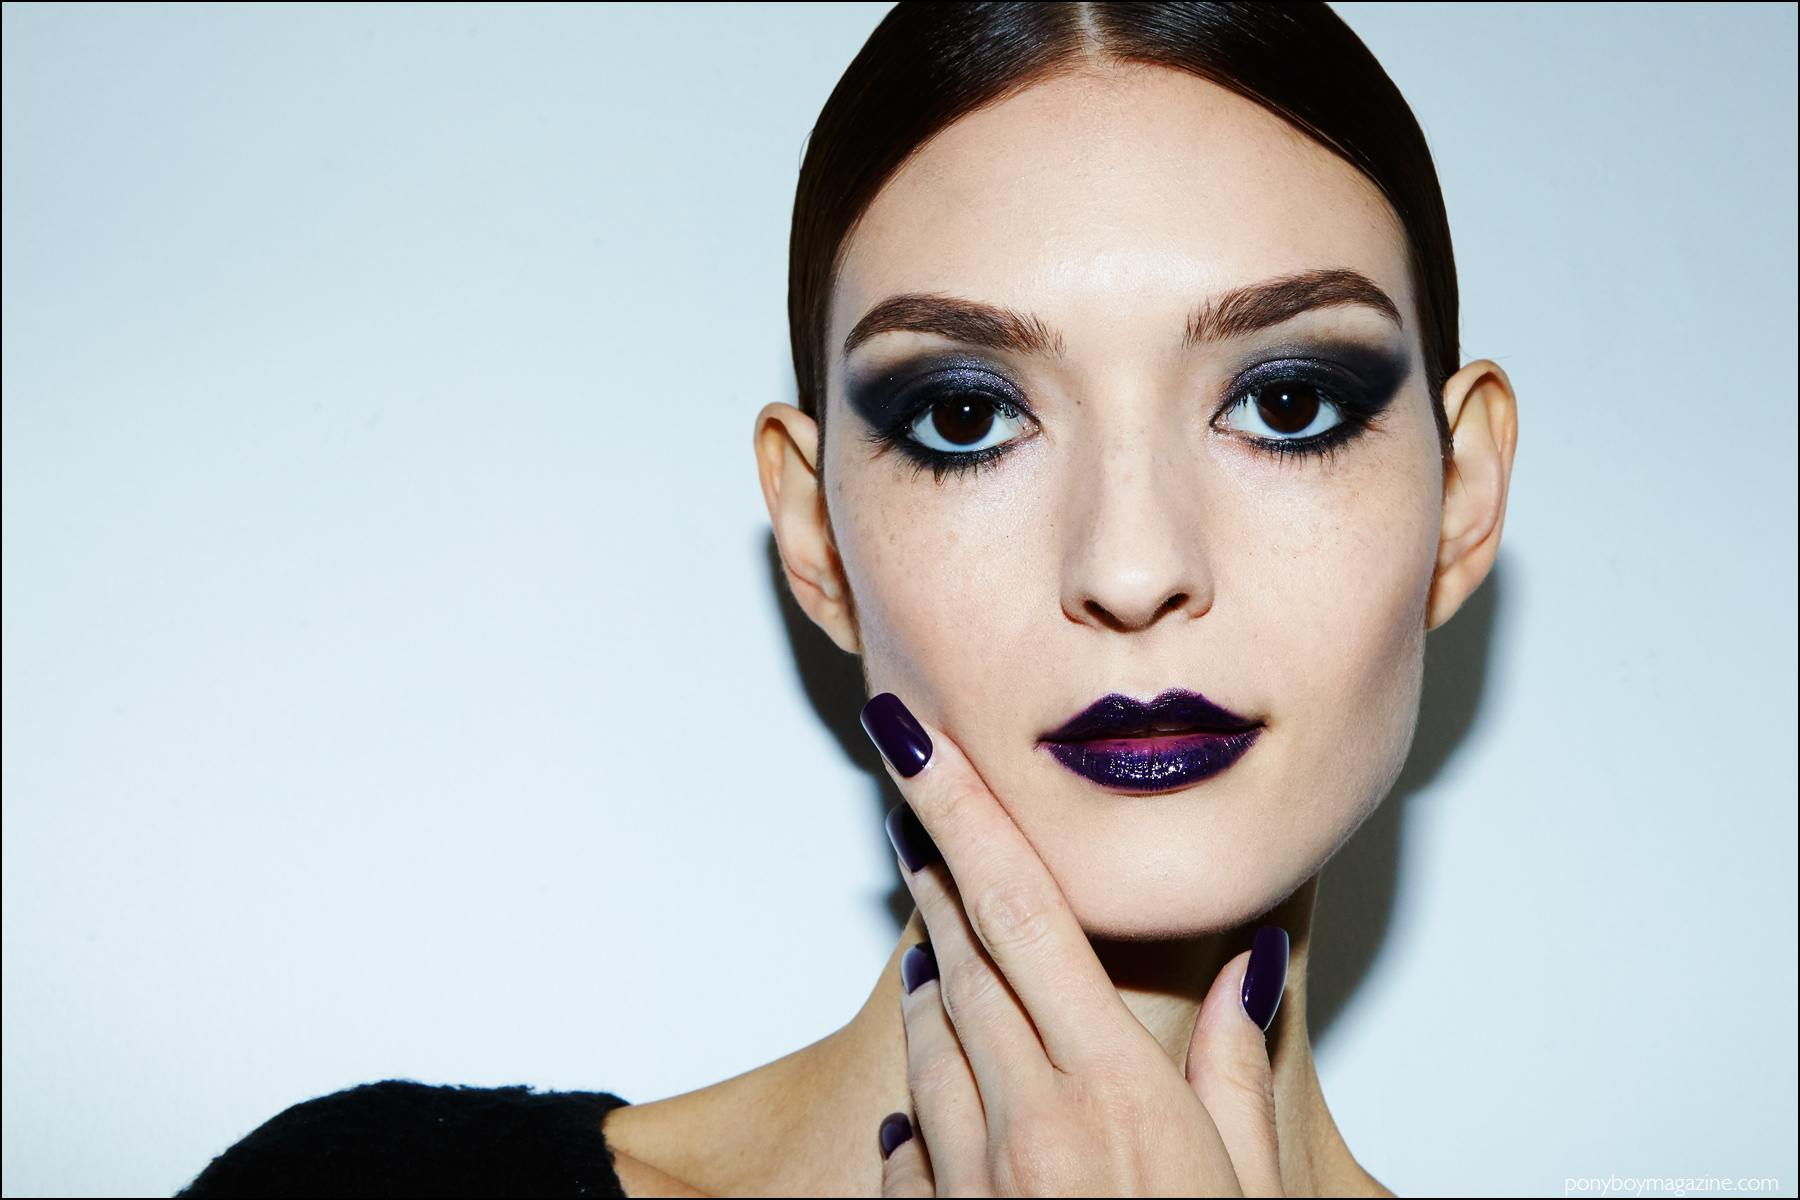 Beauty shot of a model with purple eyeshadow, lips and nails. Photographed backstage at Georgine F/W16 womenswear show by Alexander Thompson for Ponyboy magazine NY.